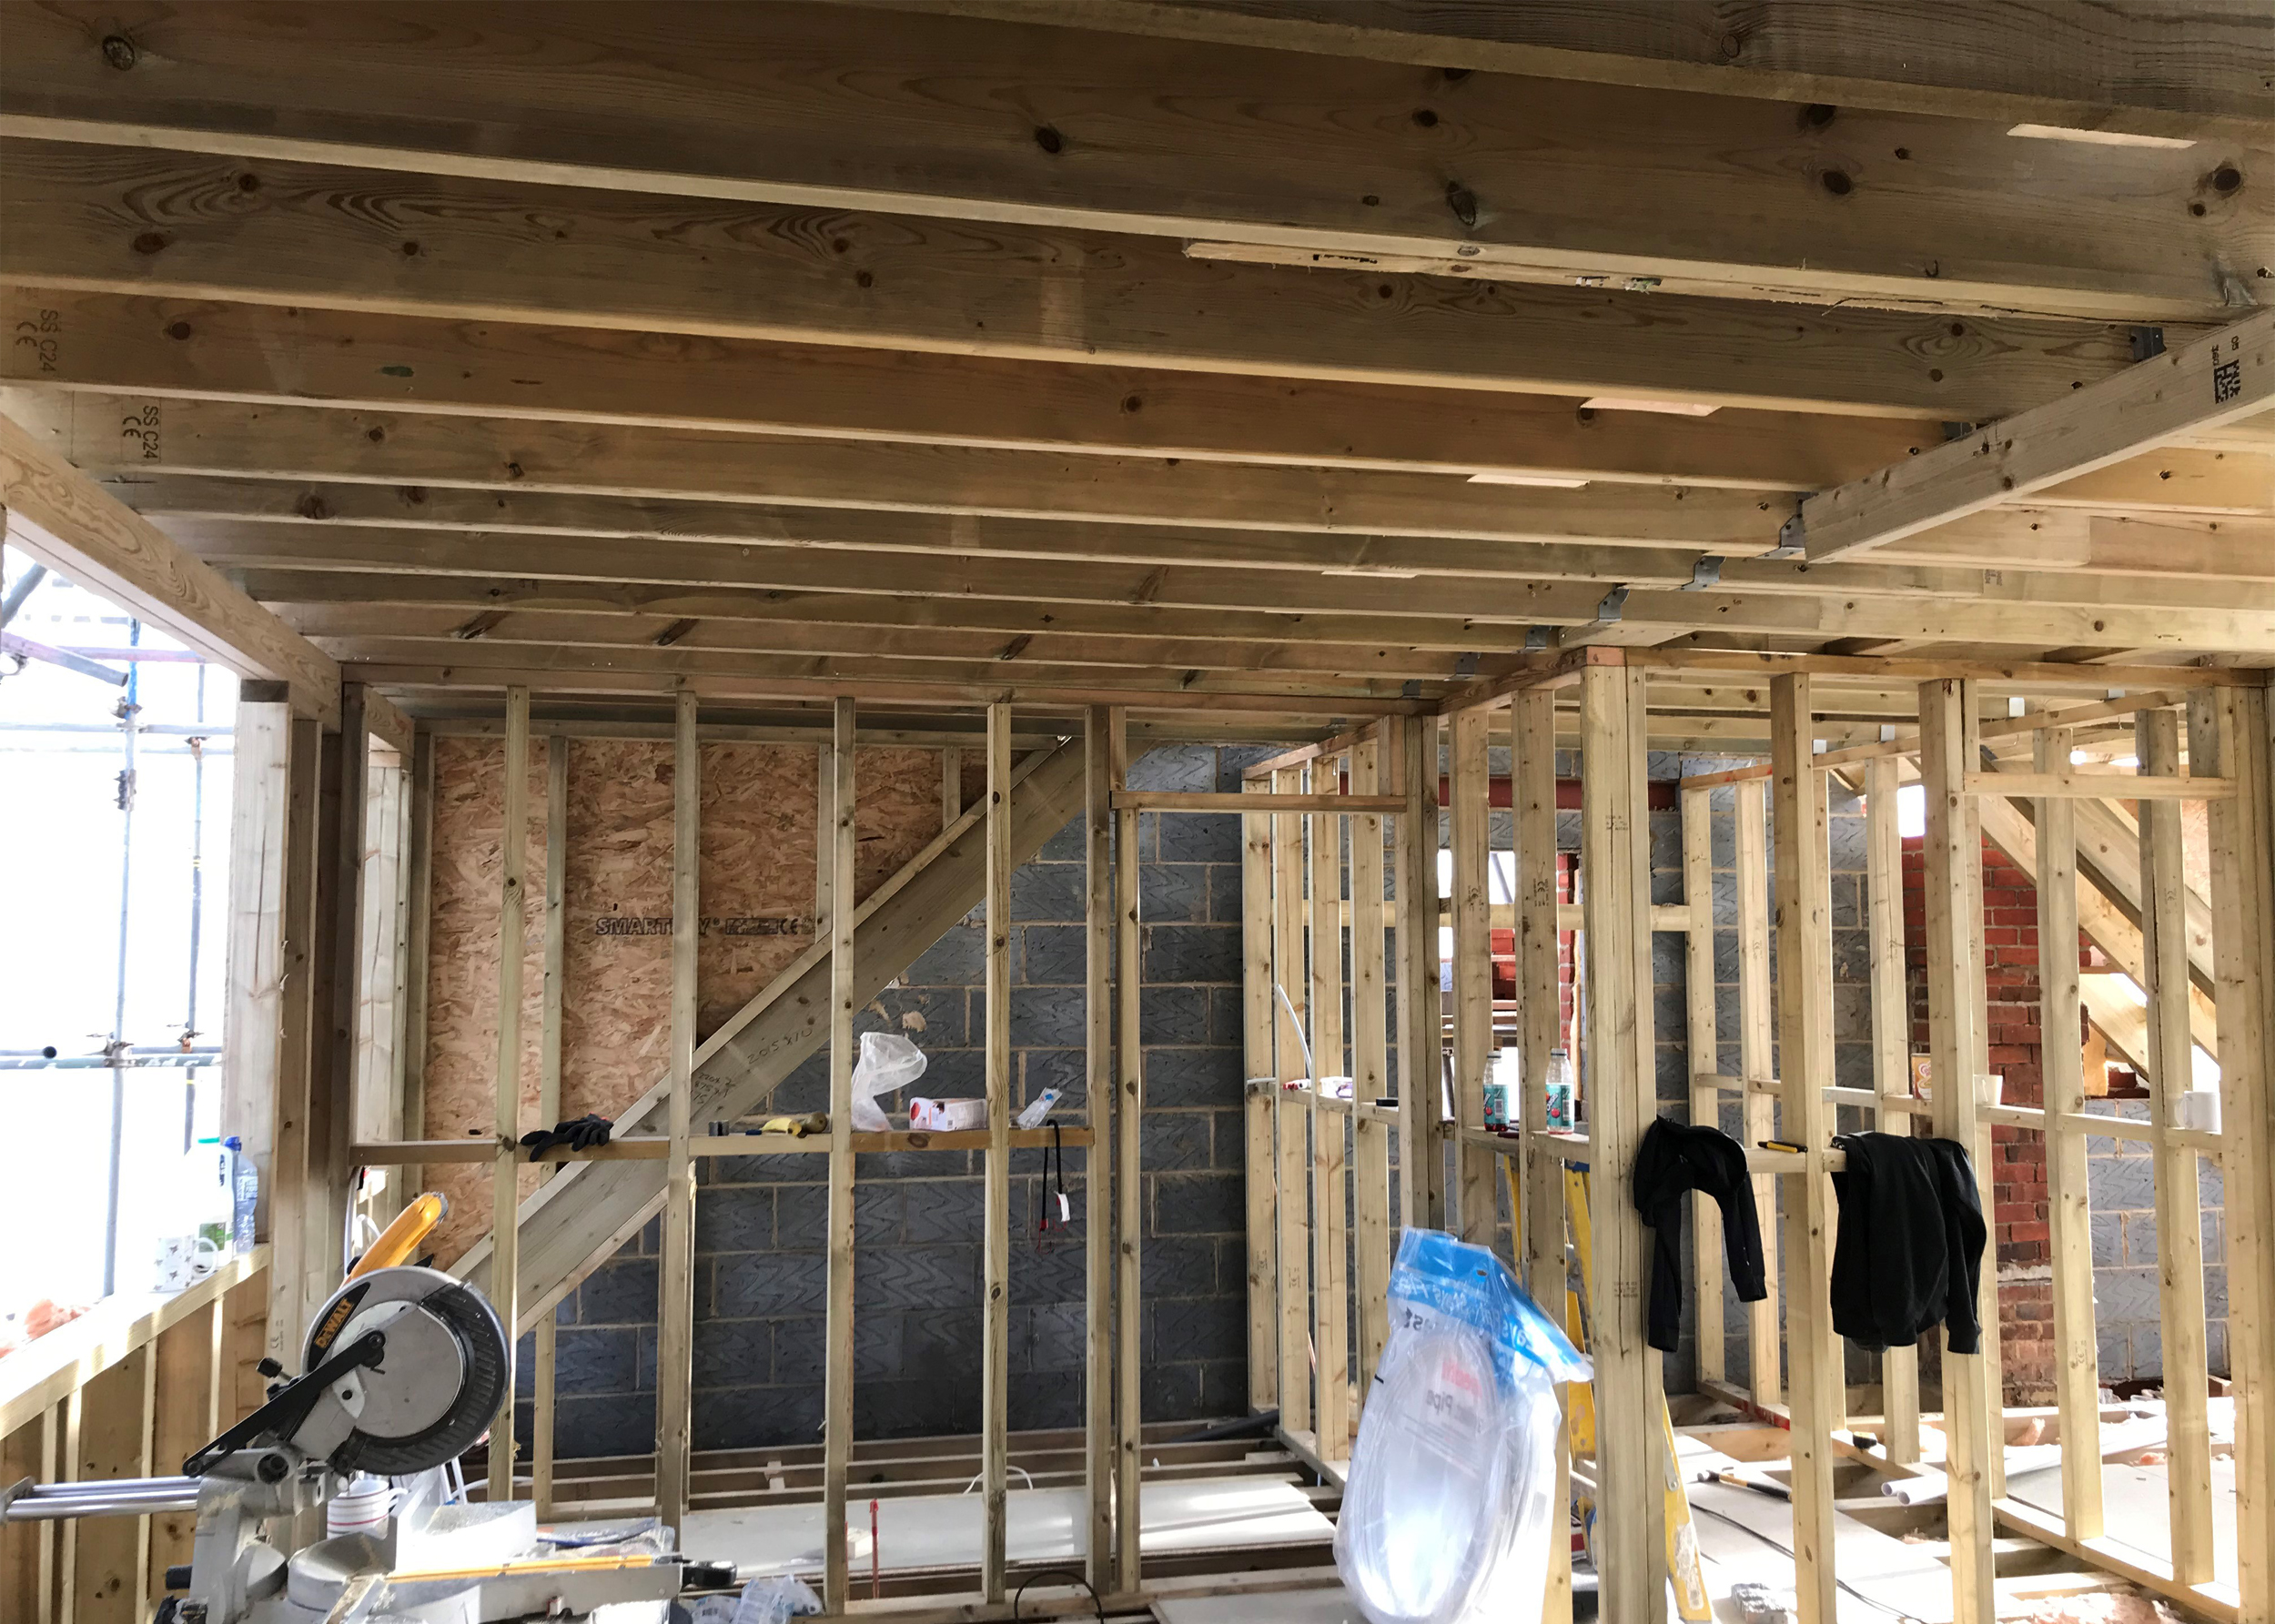 Loft Conversion by Applecore PDM in Lovedean Portsmouth - During 3